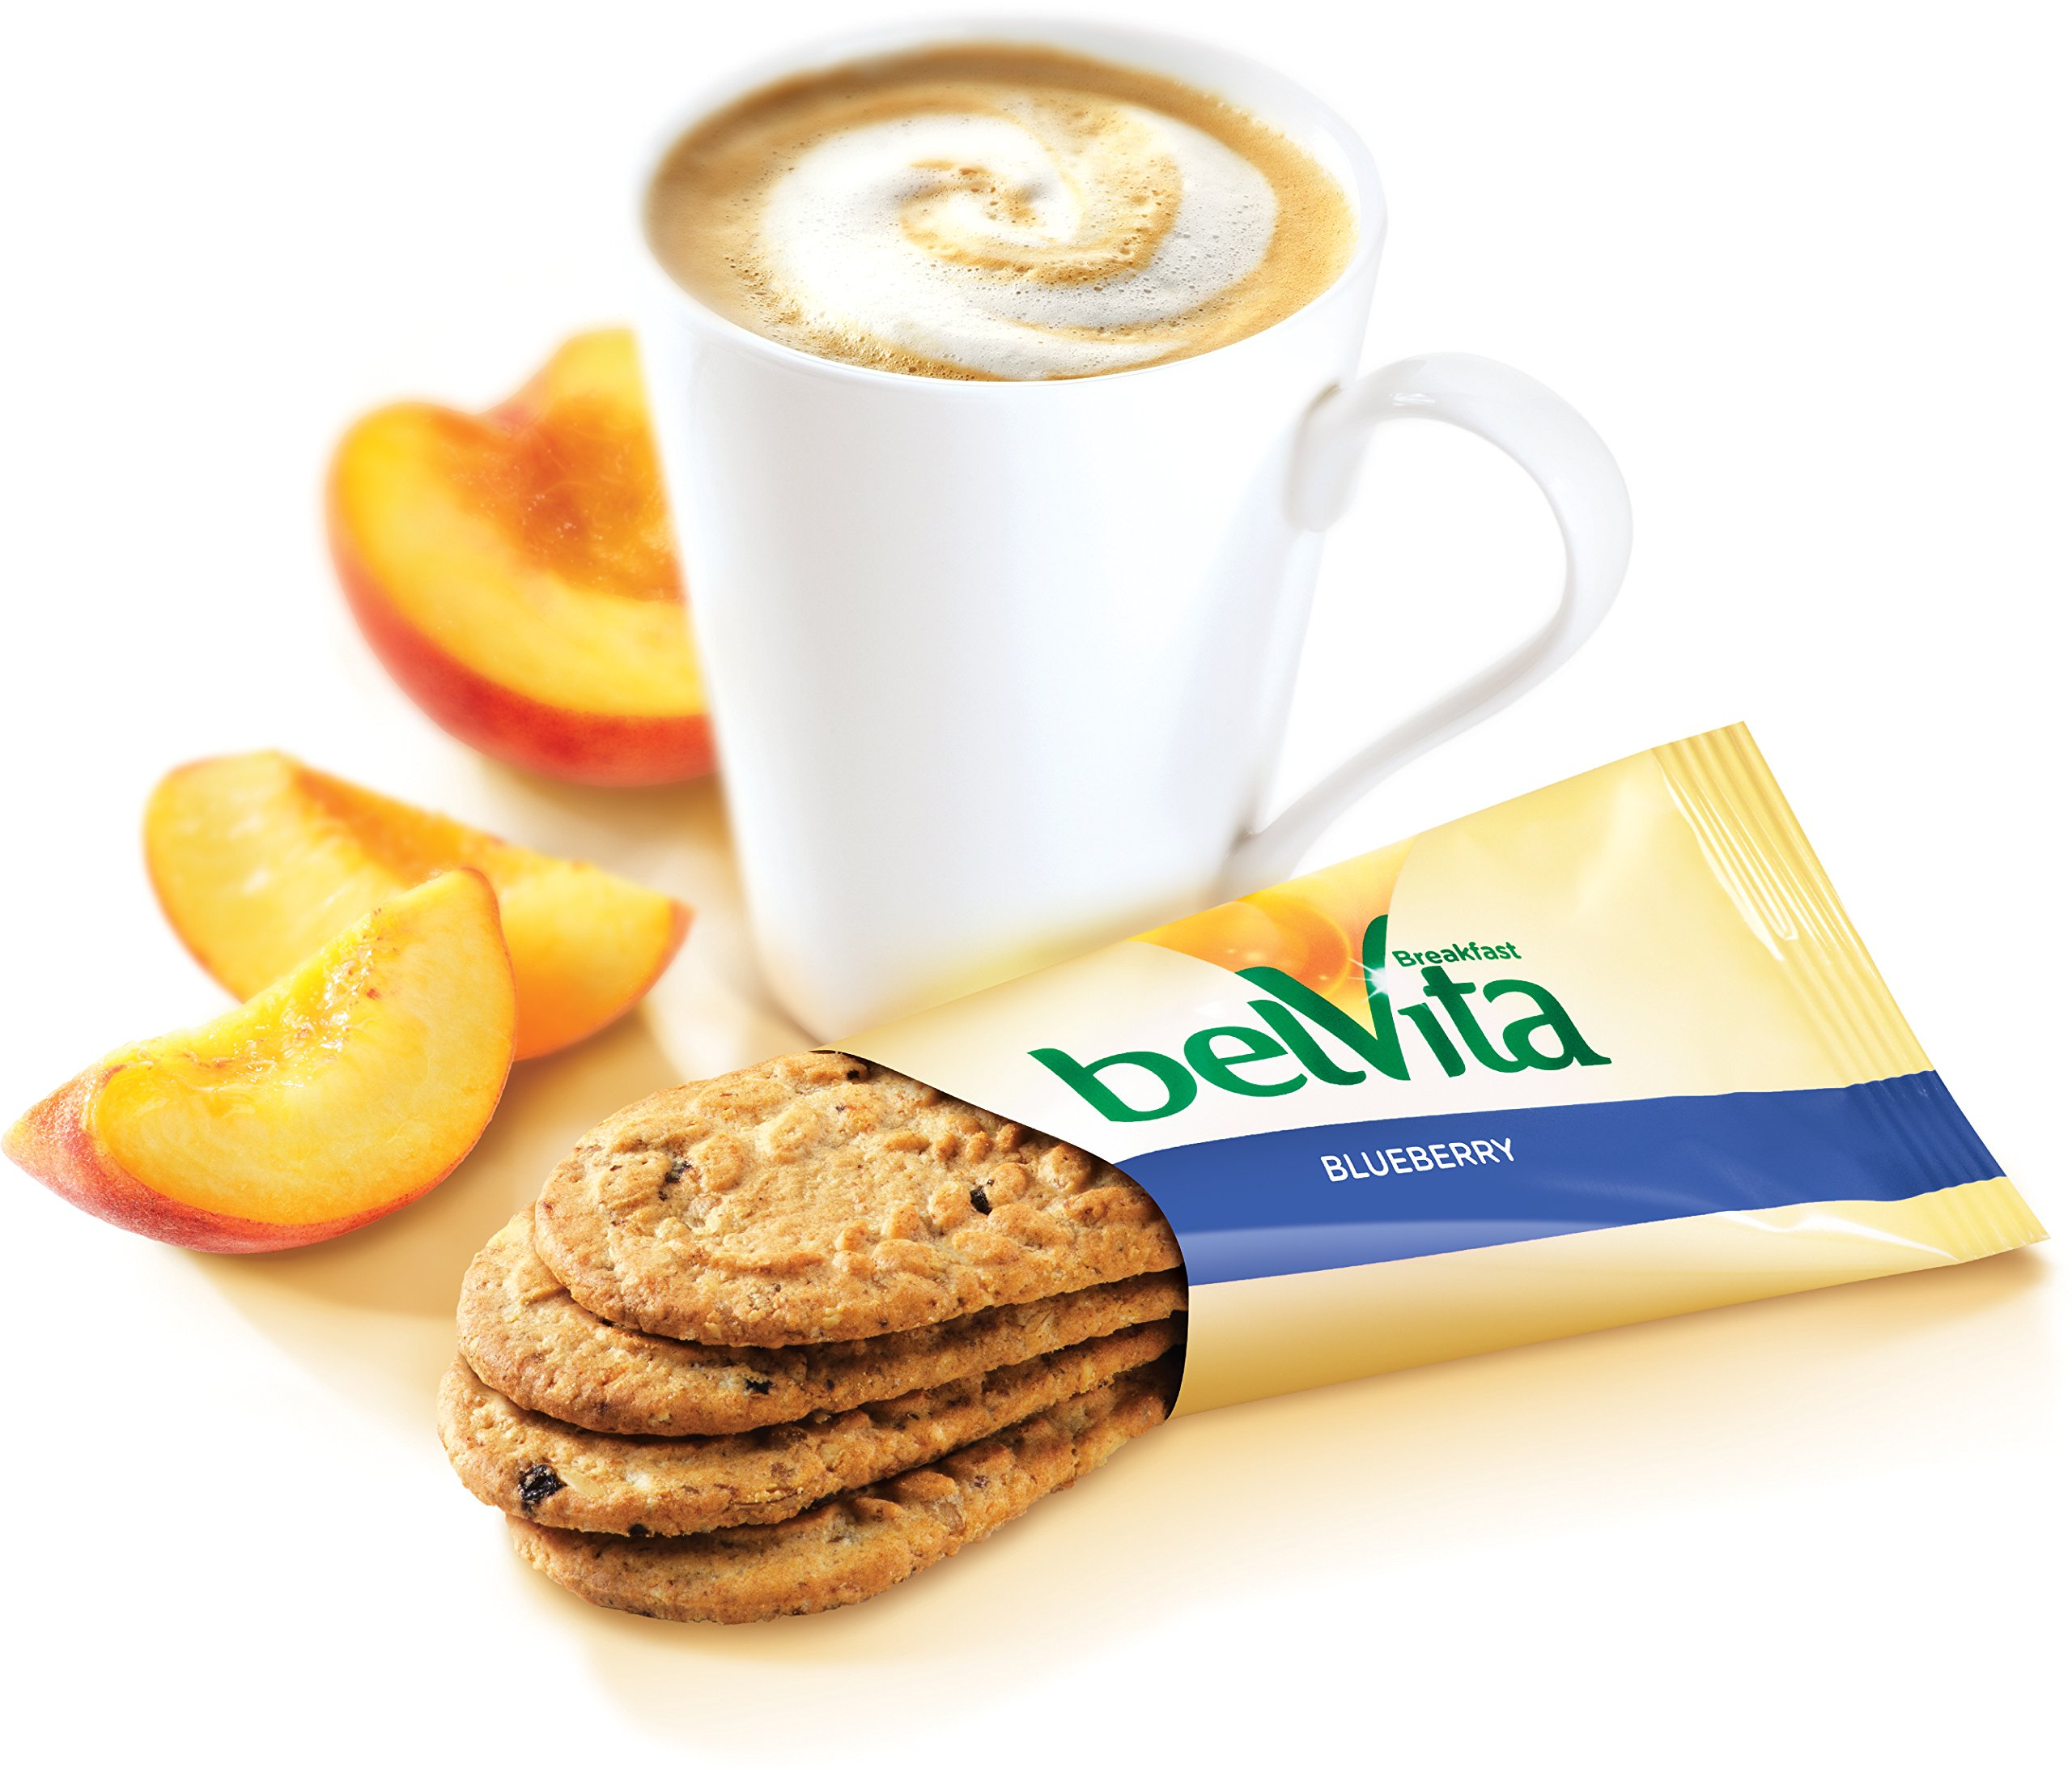 belVita Blueberry Breakfast Biscuits, 5 Count Box, 8.8 Ounce (Pack of 6) by Belvita (Image #1)